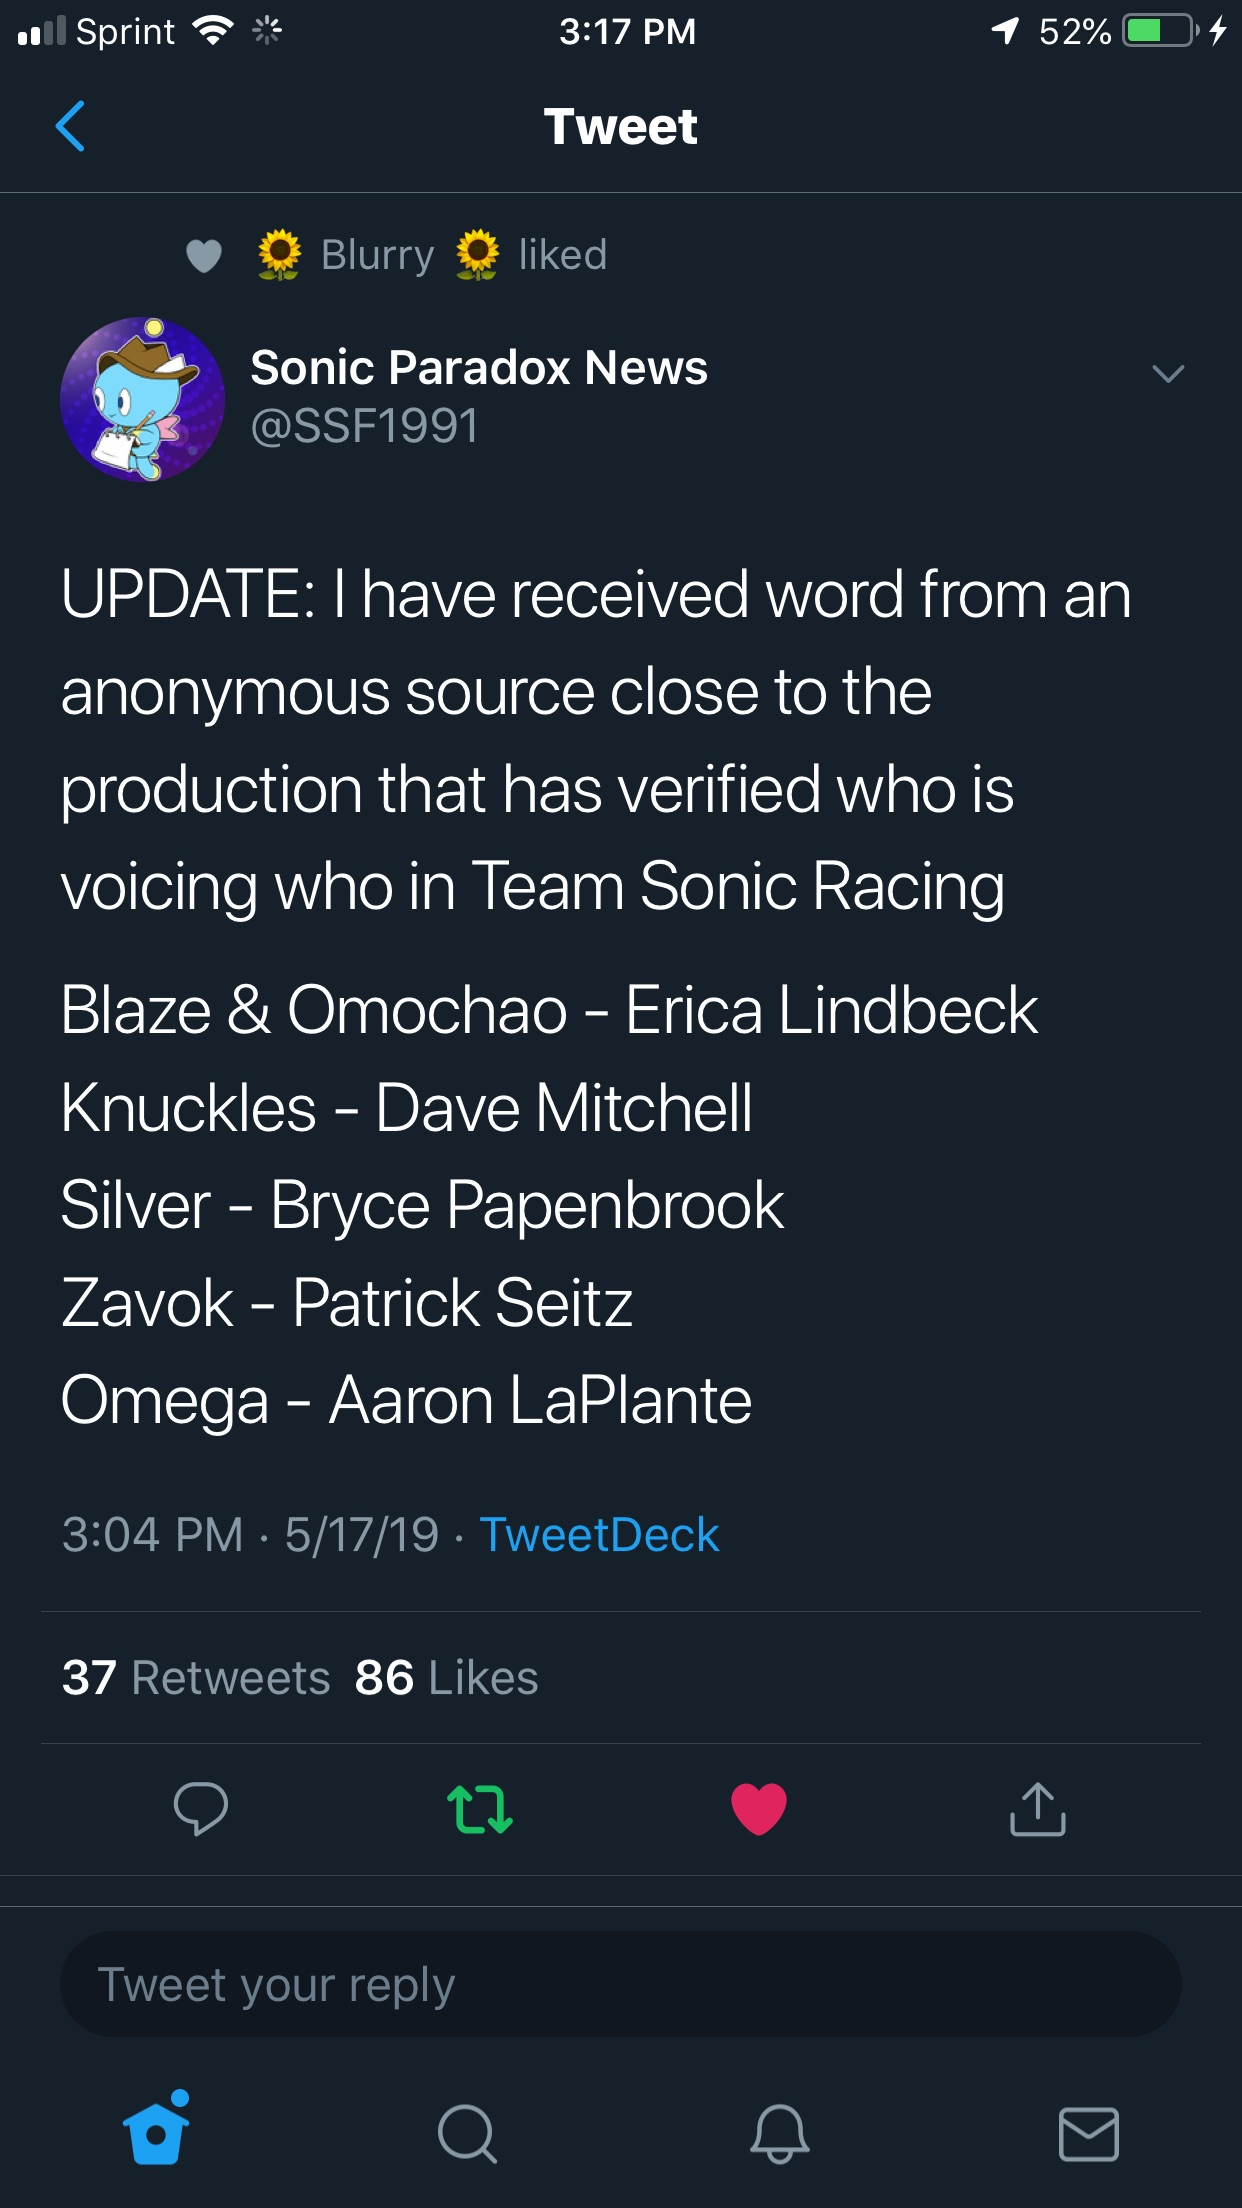 The new voices for Knuckles, Omega, Silver, Blaze/Omochao, and Zavok! State your opinions on this!